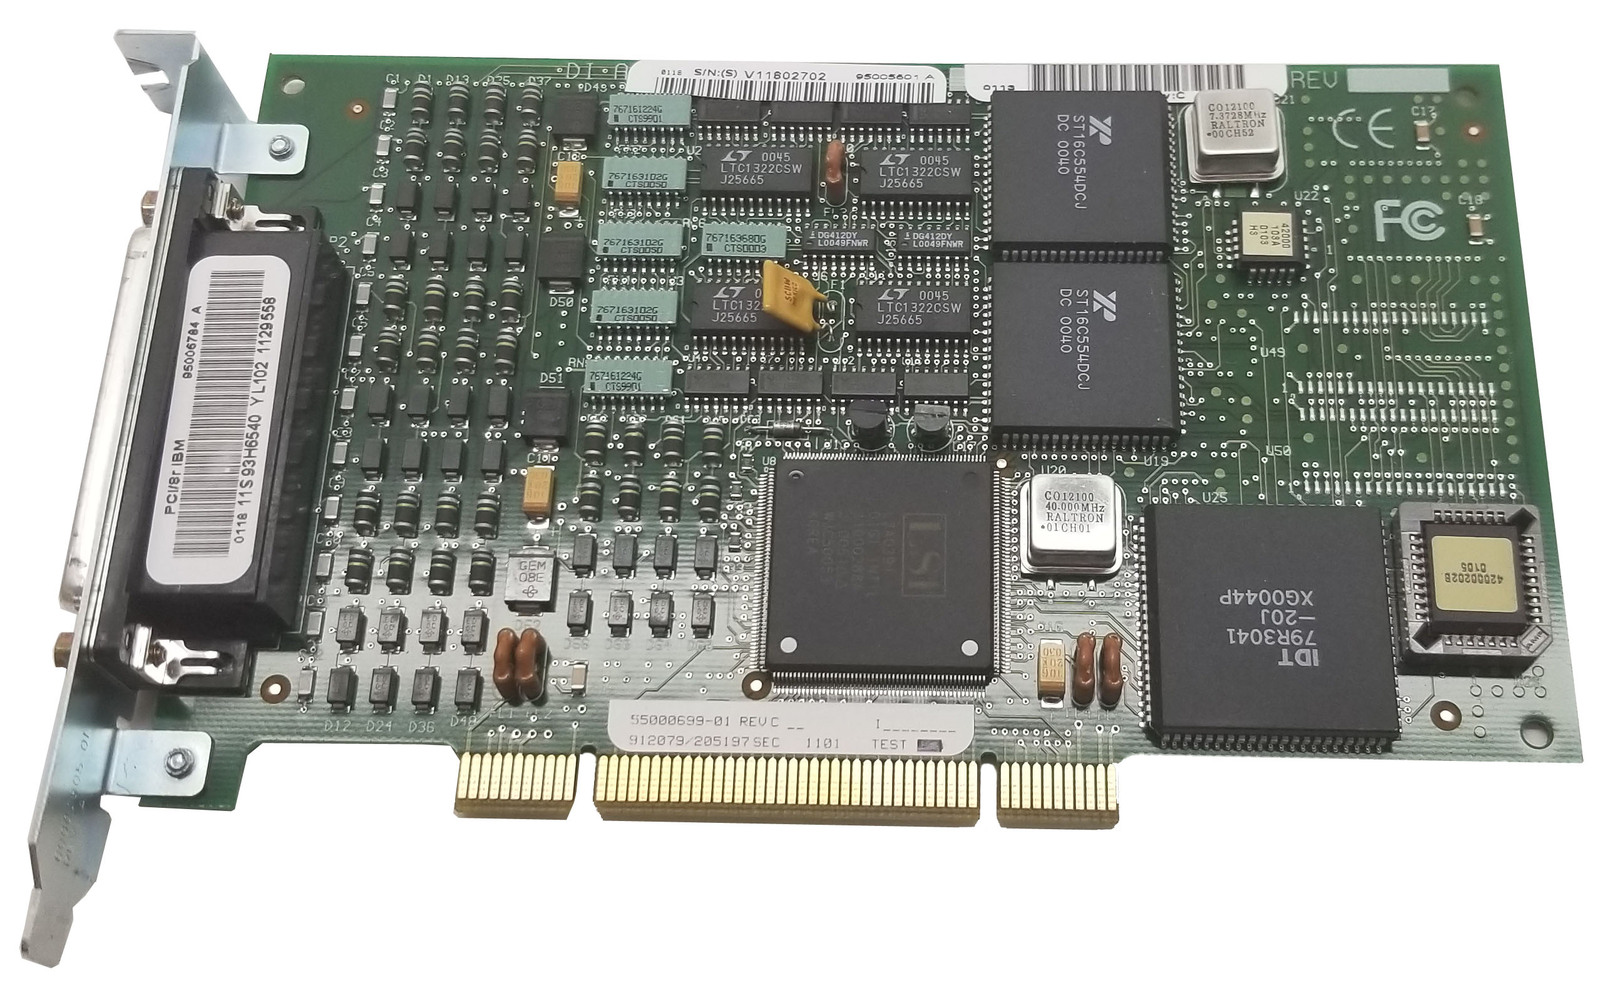 Digi 50000503-01 8-Port PCI Async Adapter Bin:7